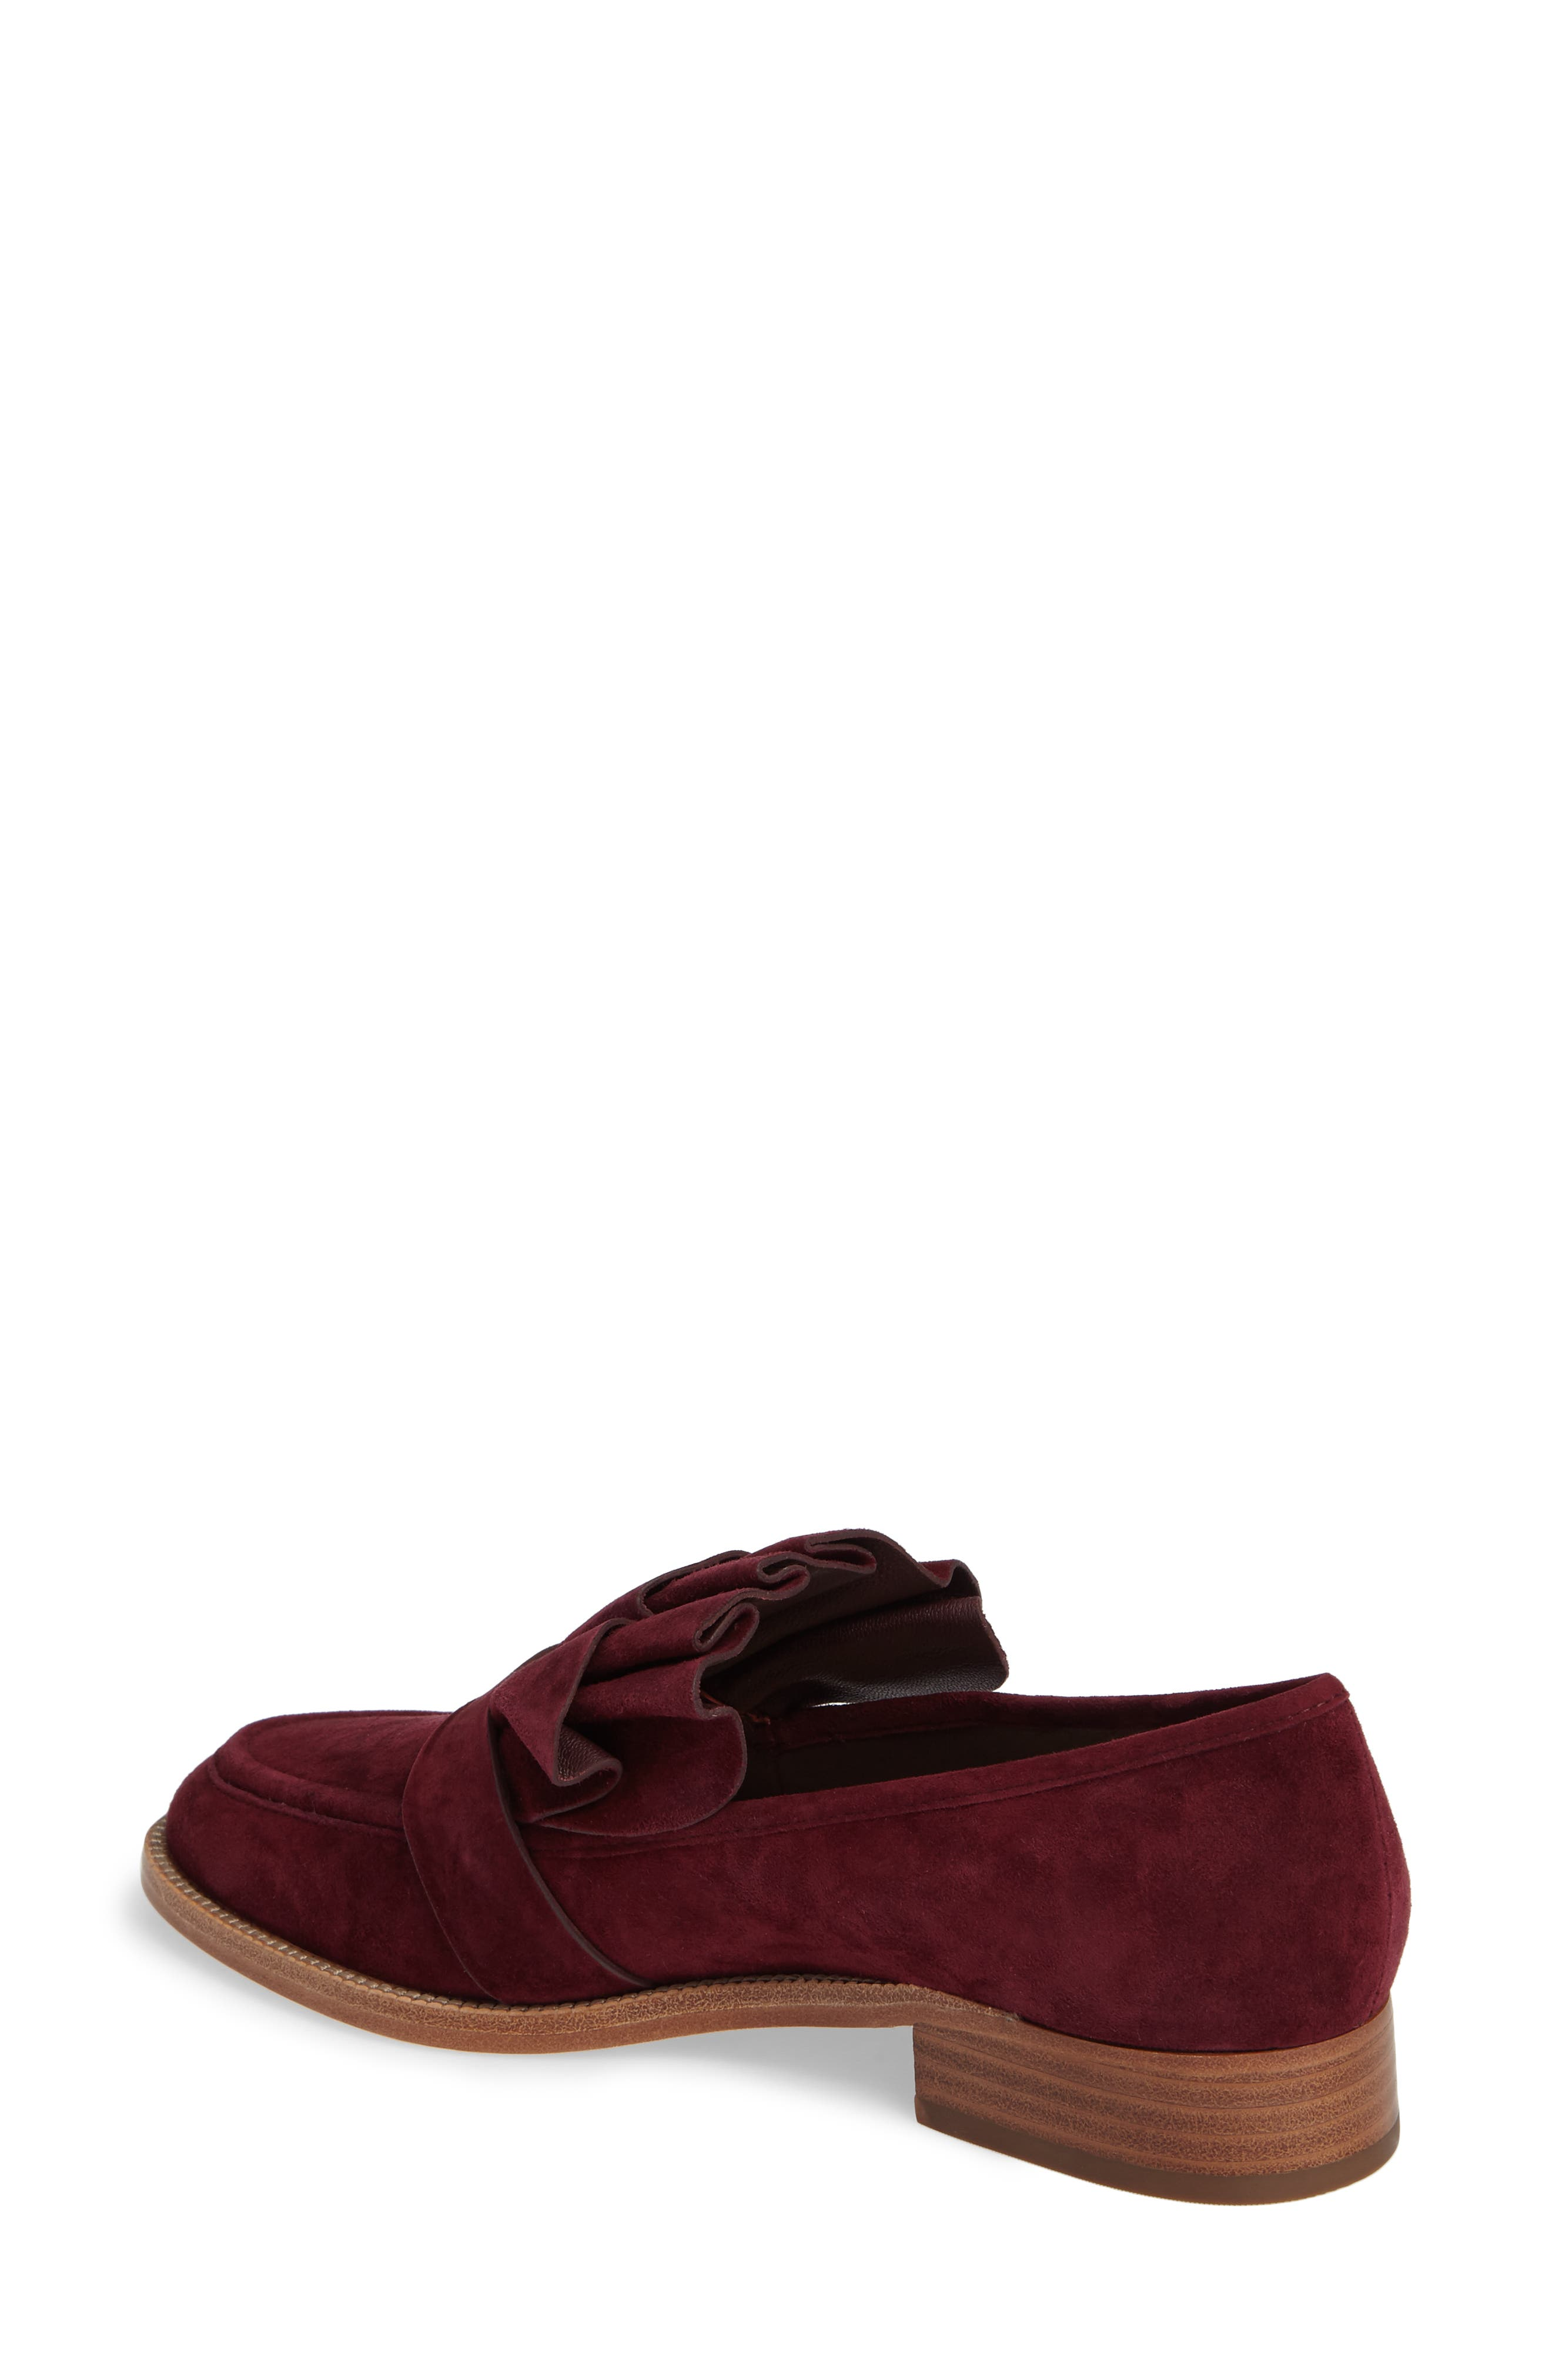 Tenley Ruffled Loafer,                             Alternate thumbnail 2, color,                             930